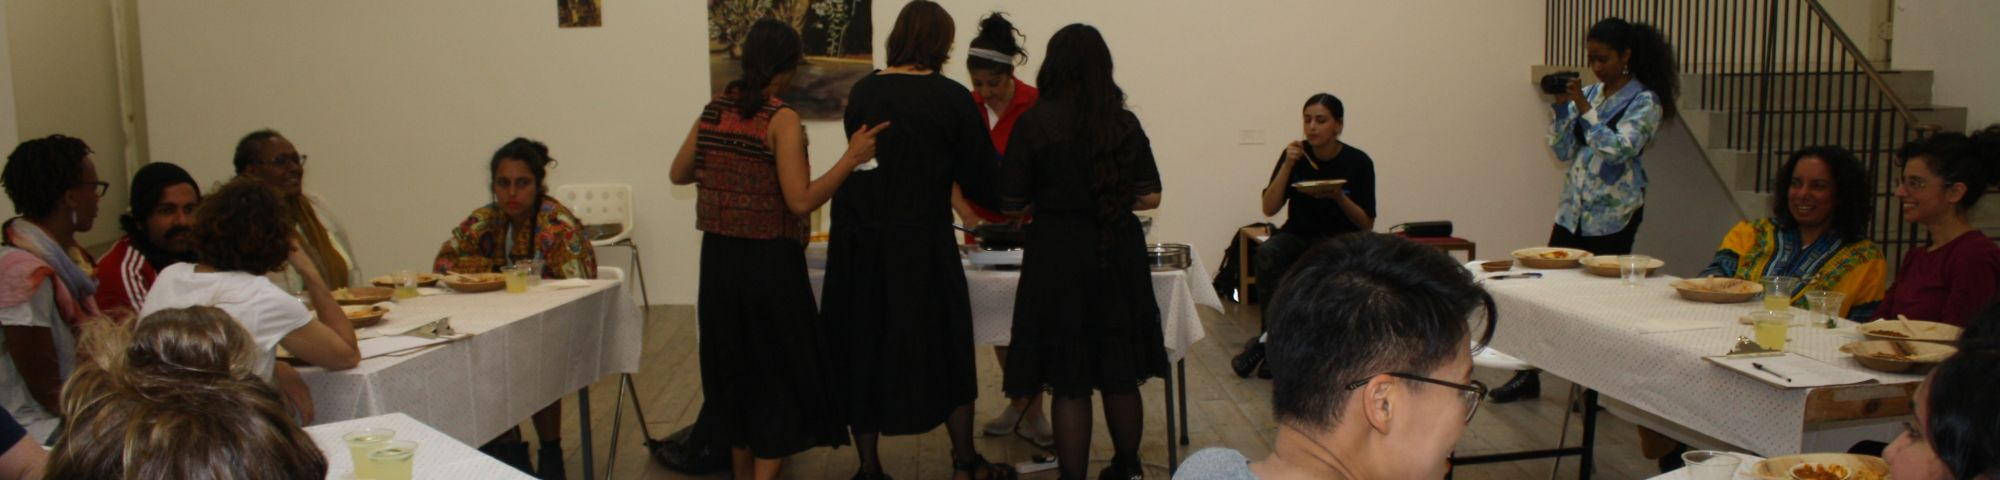 photo of people sharing a meal in the gallery